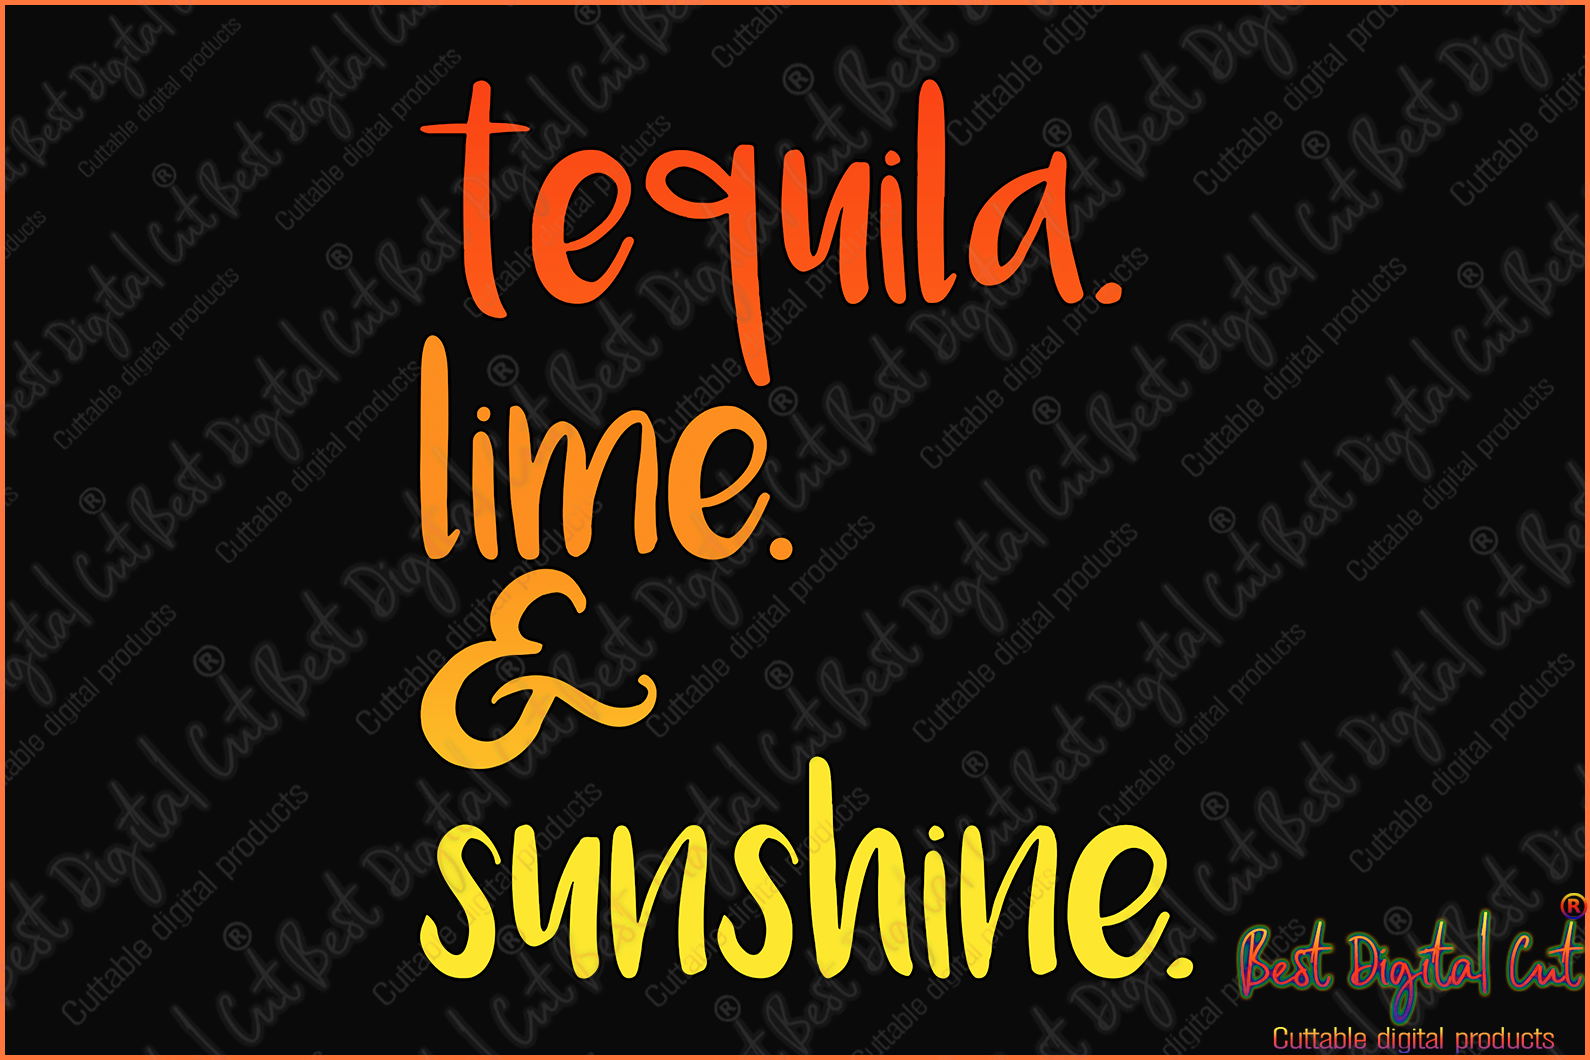 Tequila lime and sunshine svg,machines cameo svg,funny gift svg,vacay svg,tacos svg,cinco de myo svg,beach vacation svg,vacation svg,digital file, vinyl for cricut, svg cut files, svg clipart, silhouette svg, cricut svg file